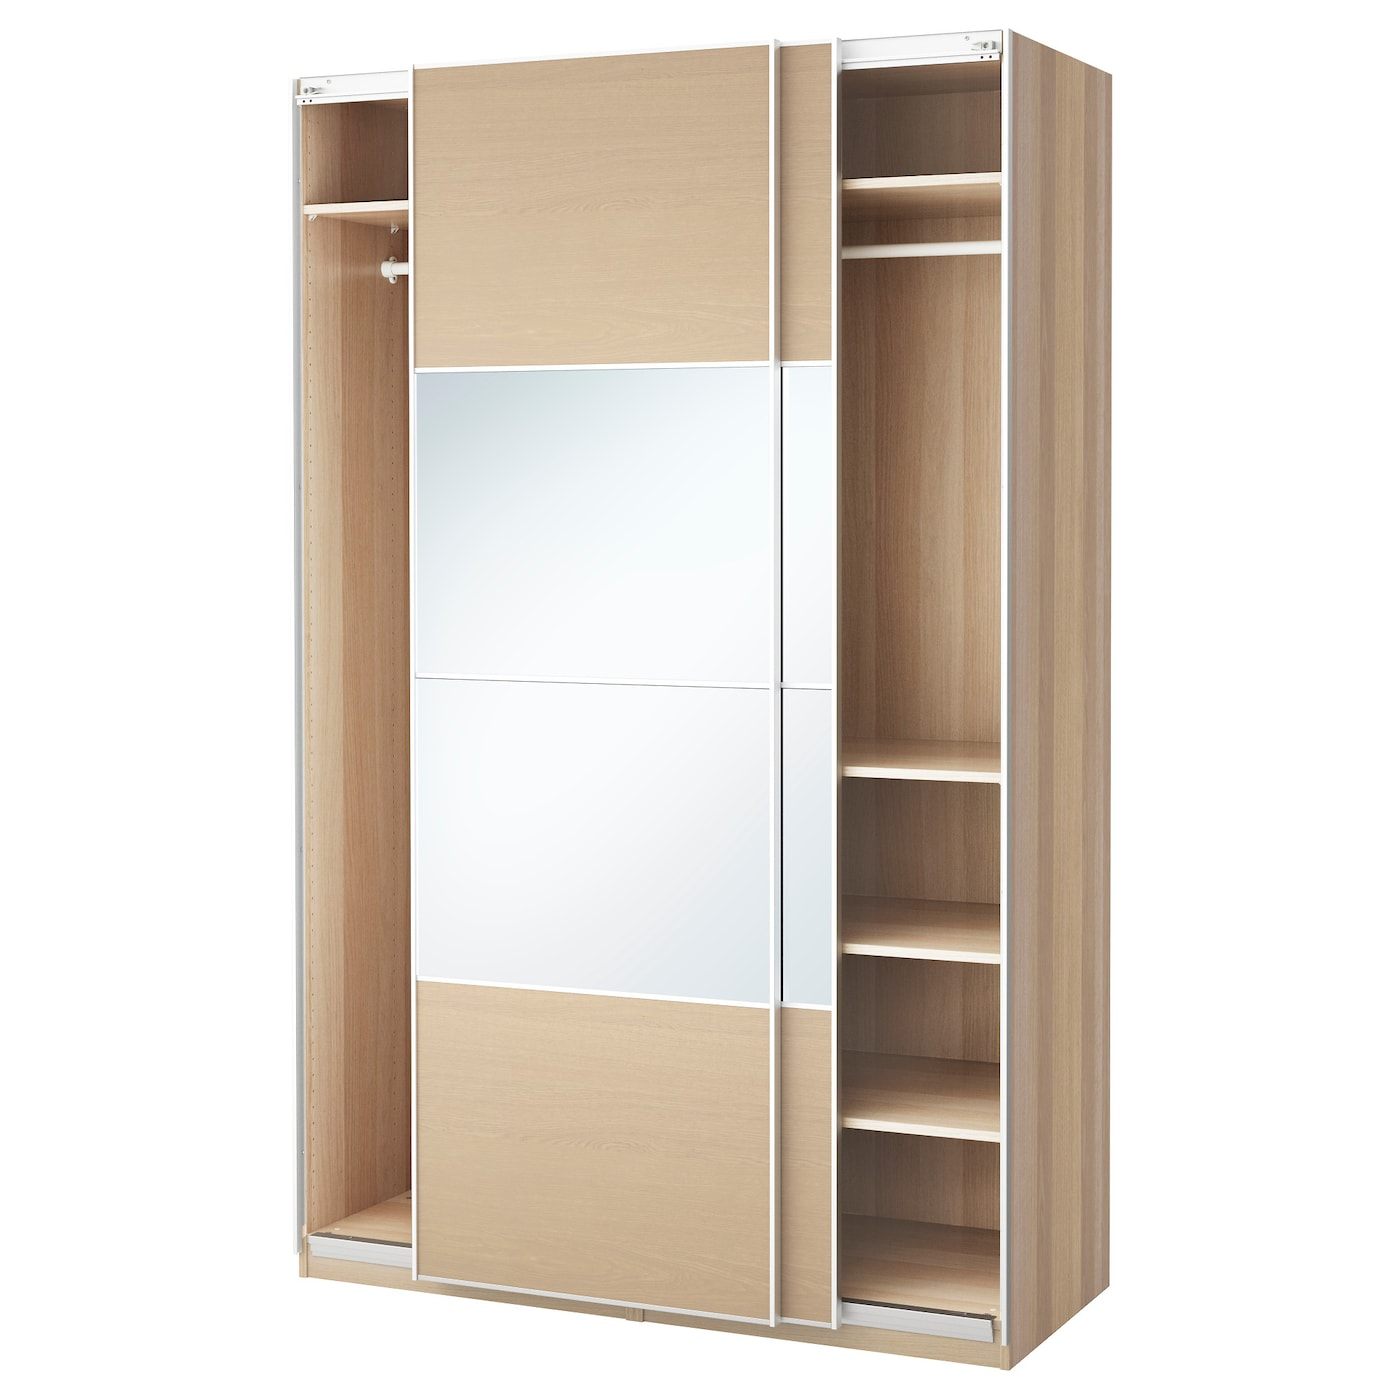 Pax wardrobe white stained oak effect auli ilseng 150x66x236 cm ikea - Armoire japonaise ikea ...